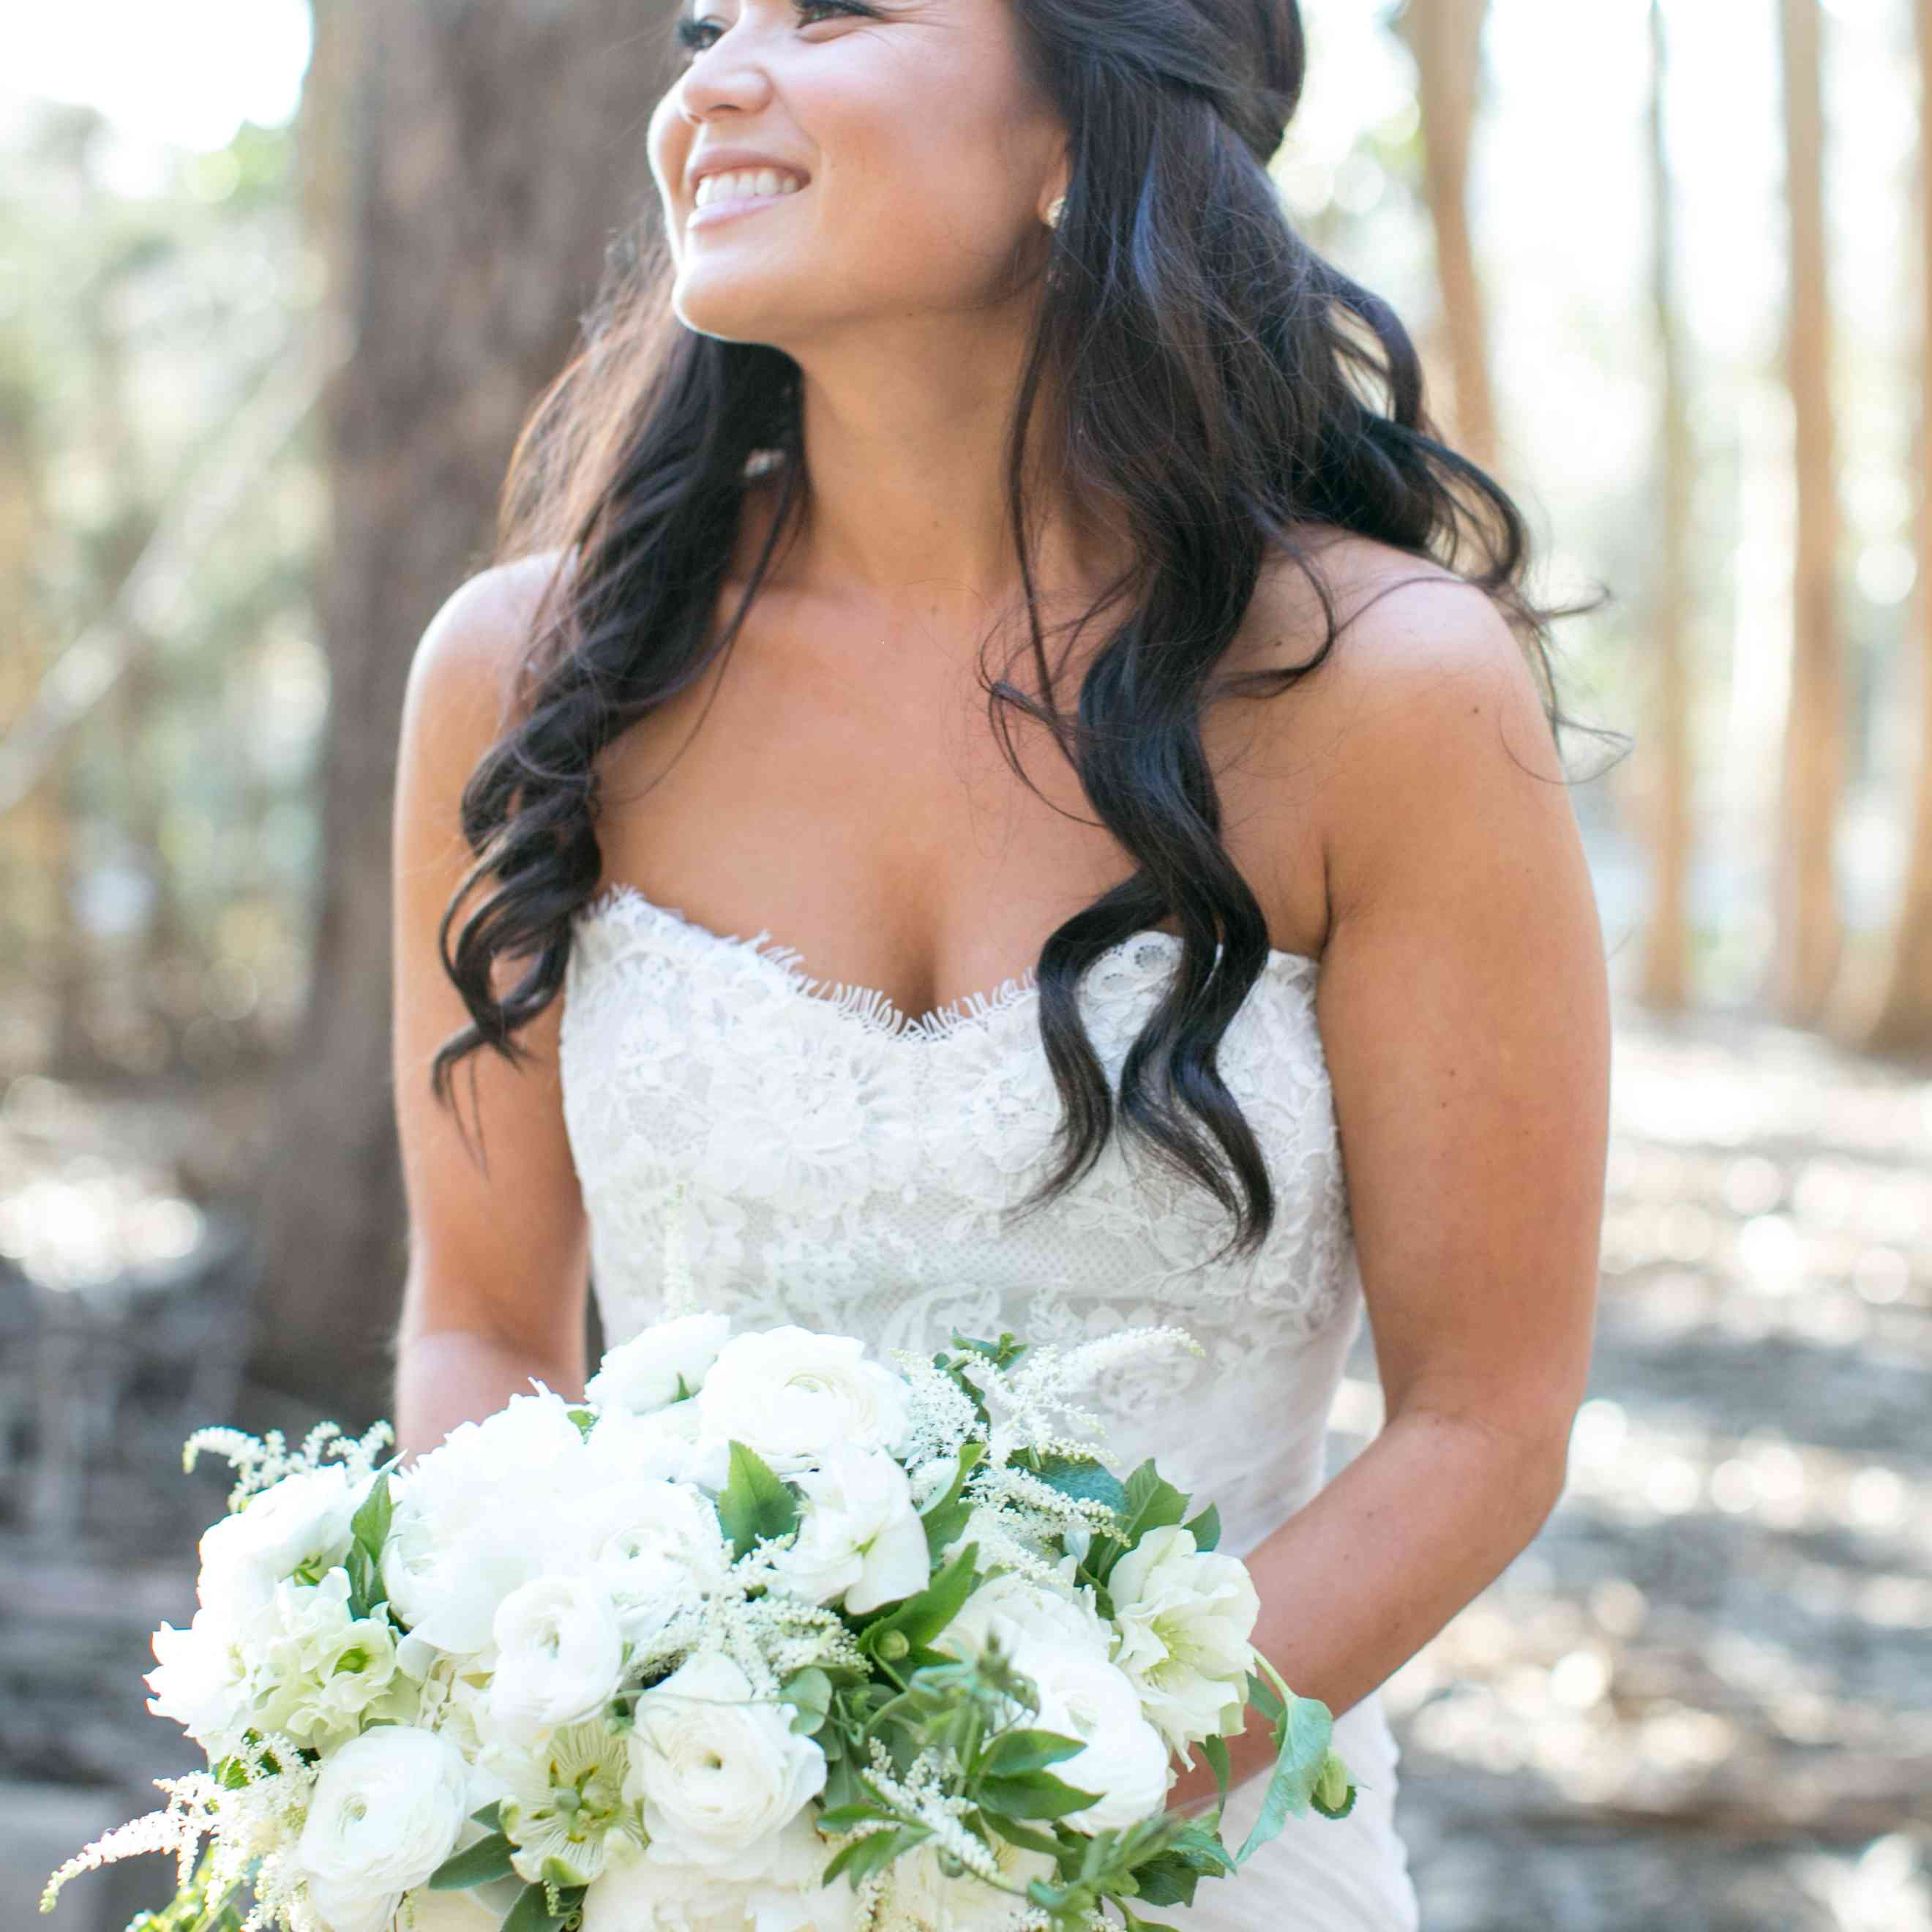 Hair Style For Women Wedding: The 60 Prettiest Bridal Hairstyles From Real Weddings